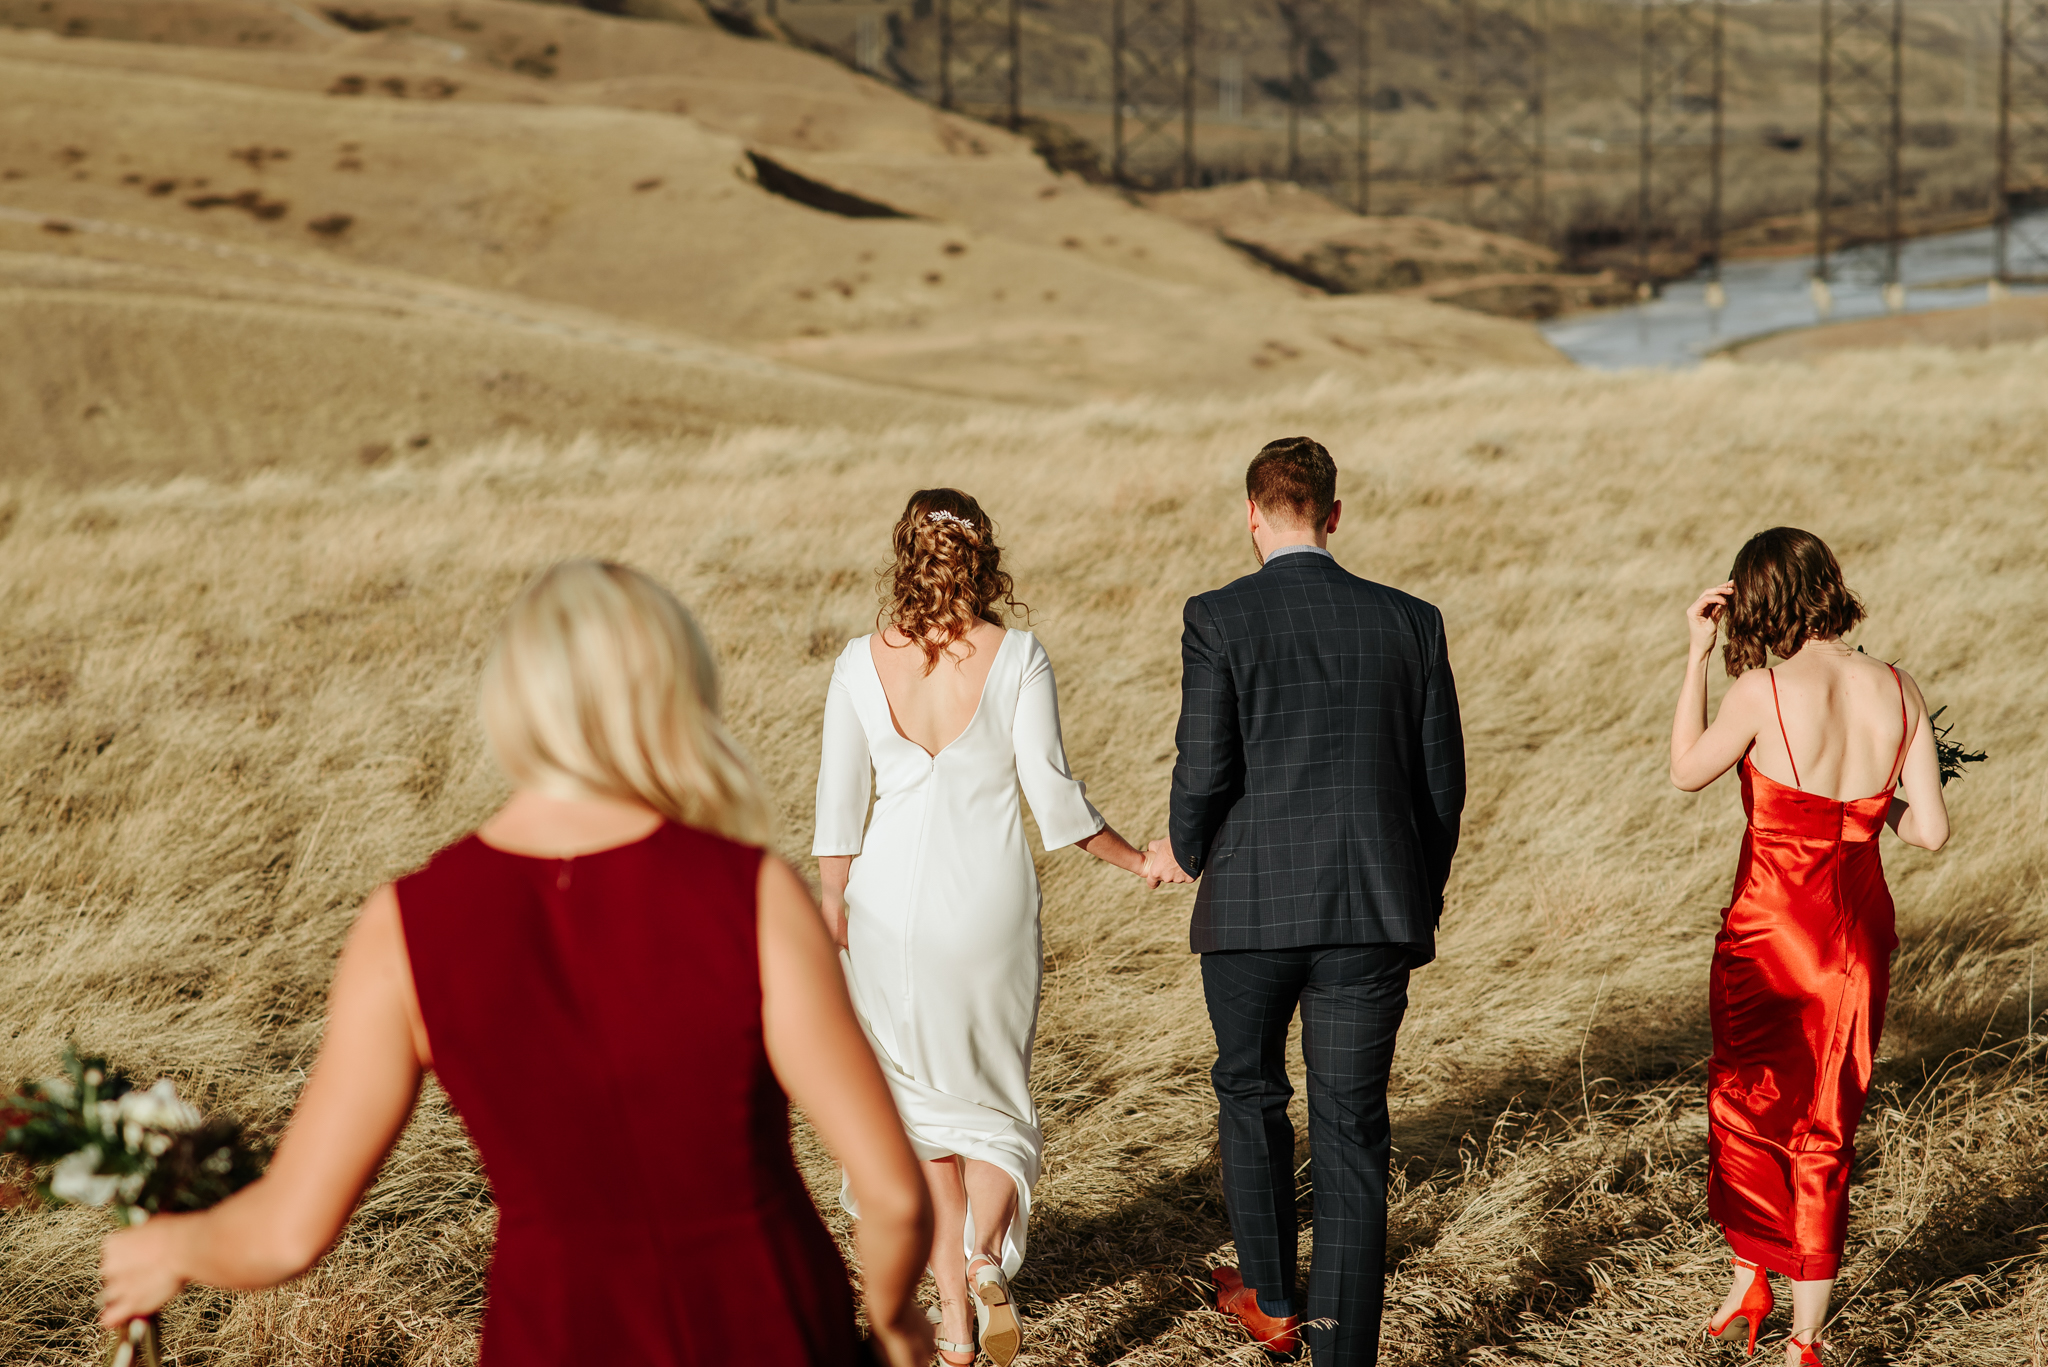 lethbridge-wedding-photographer-love-and-be-loved-photography-kris-amy-paradise-canyon-image-picture-photo-16.jpg